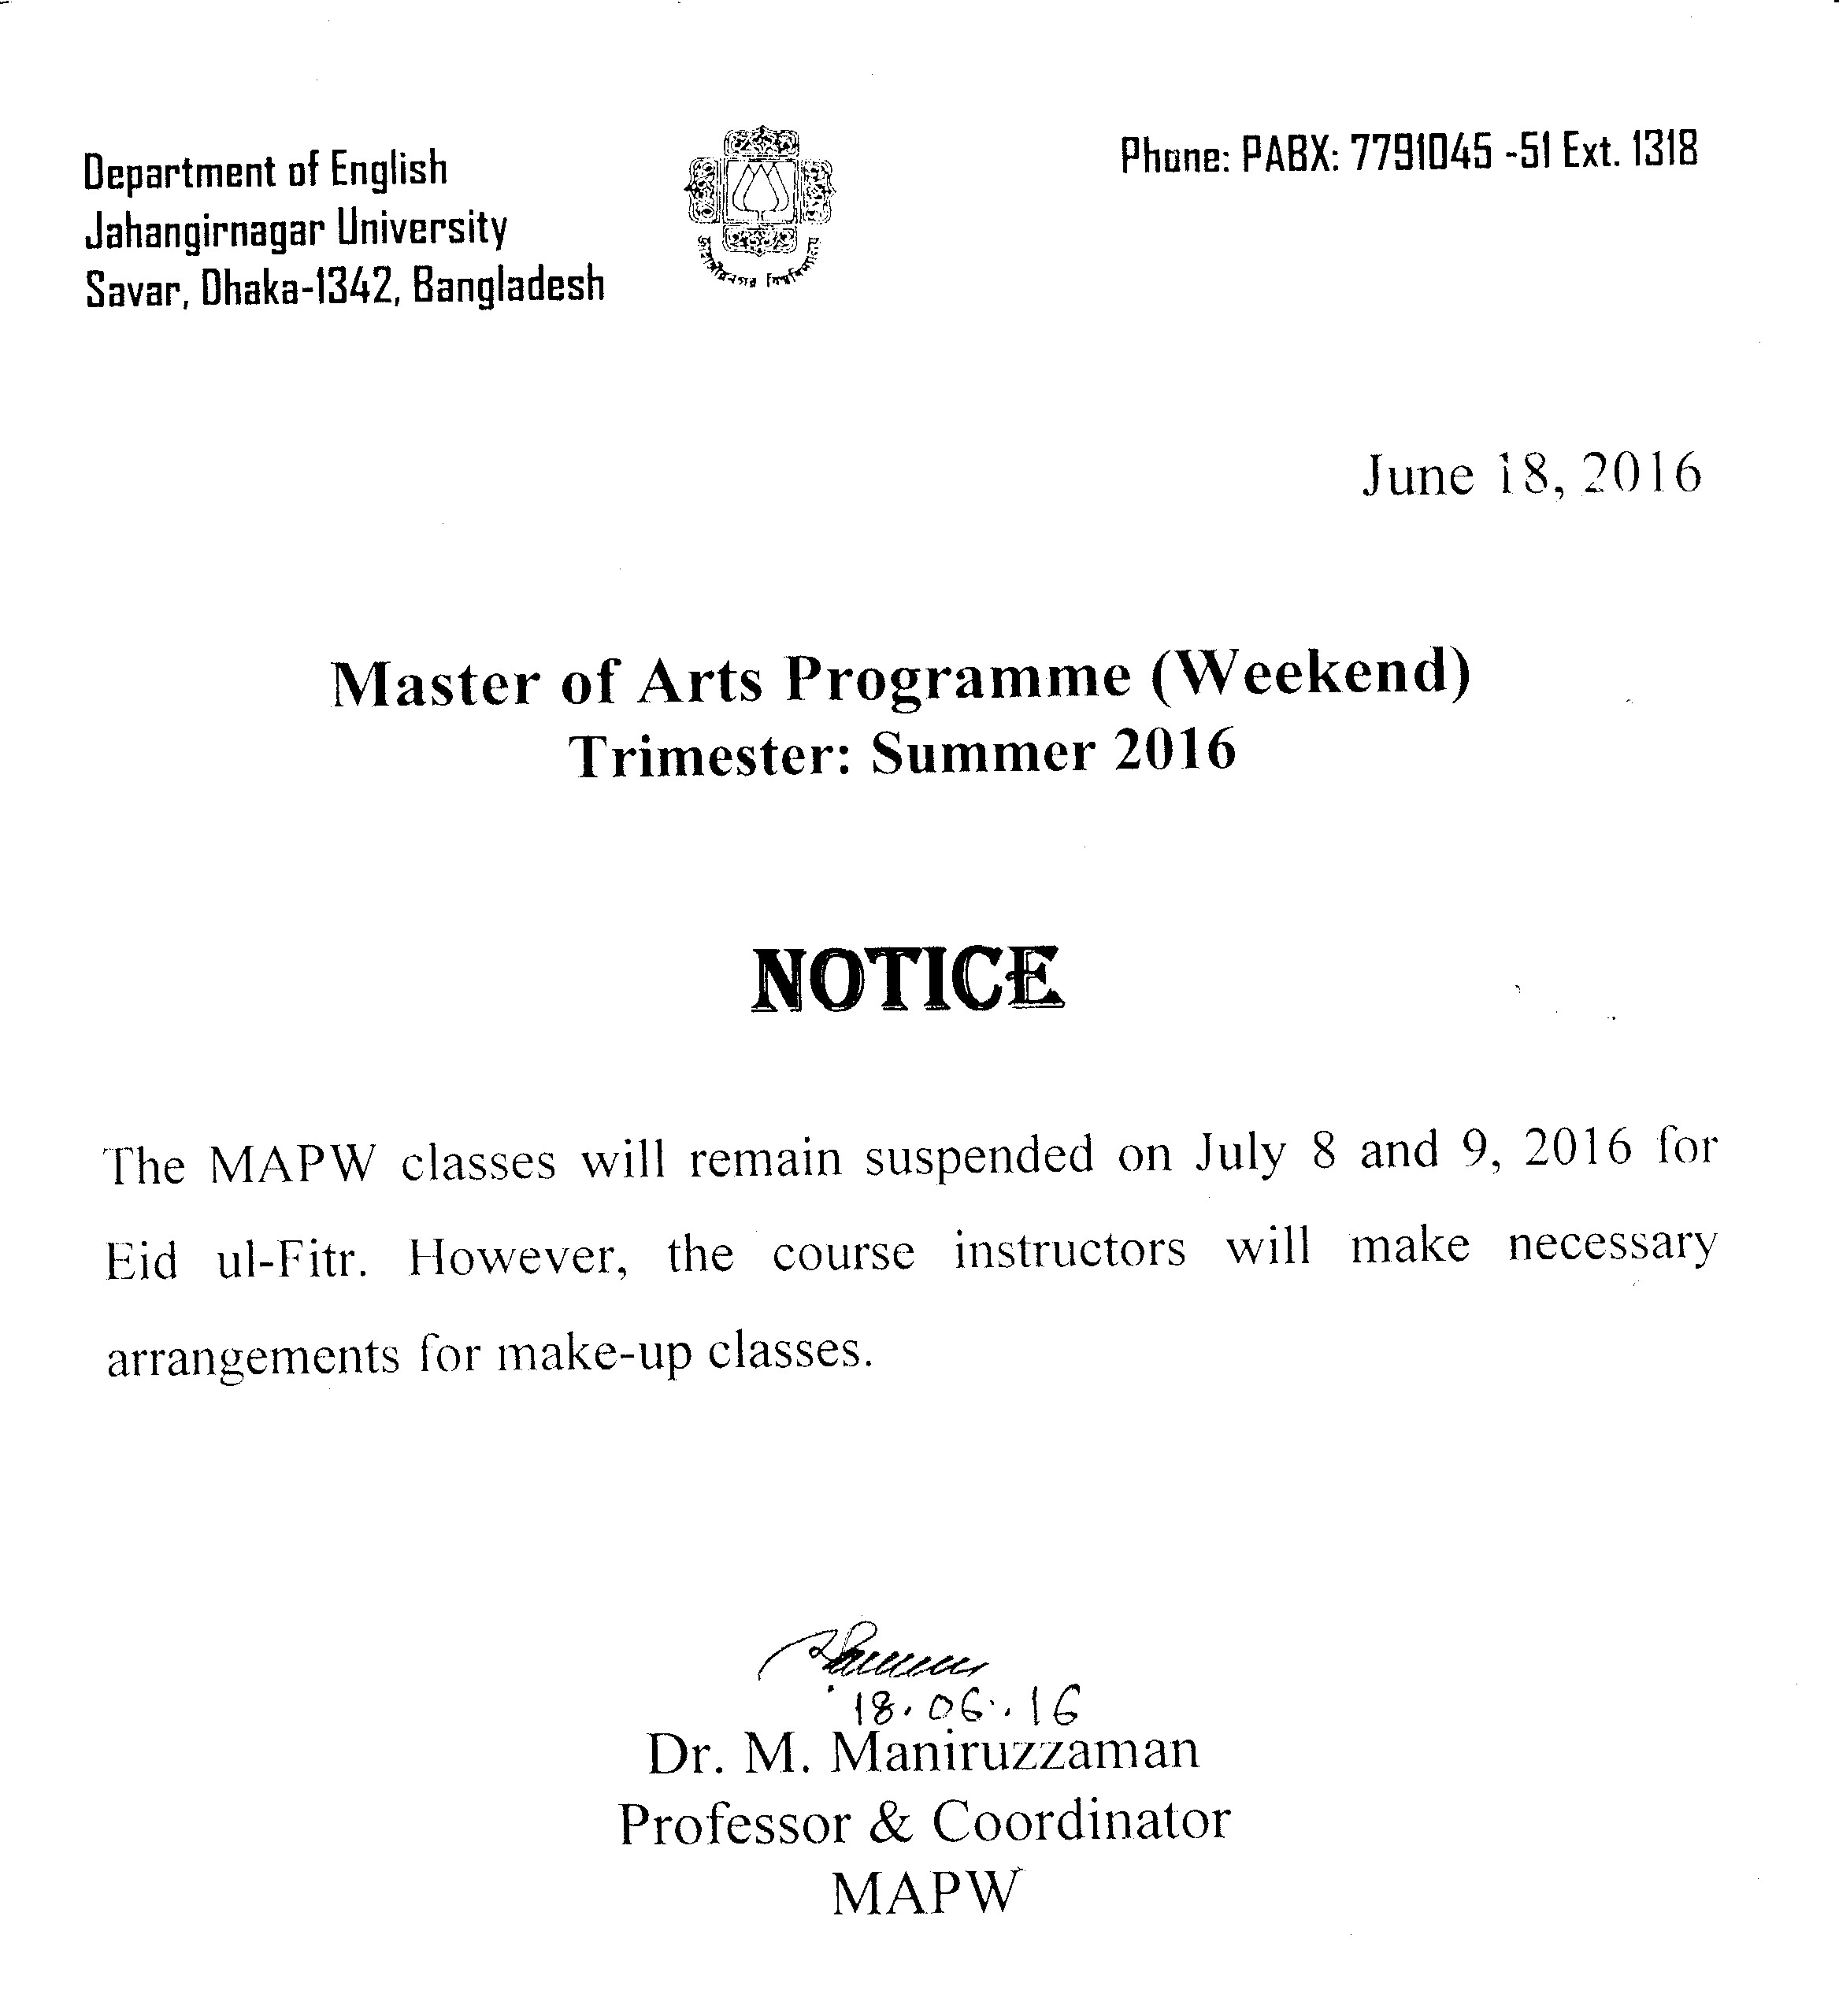 Class Suspended For Eid Ul Fitr